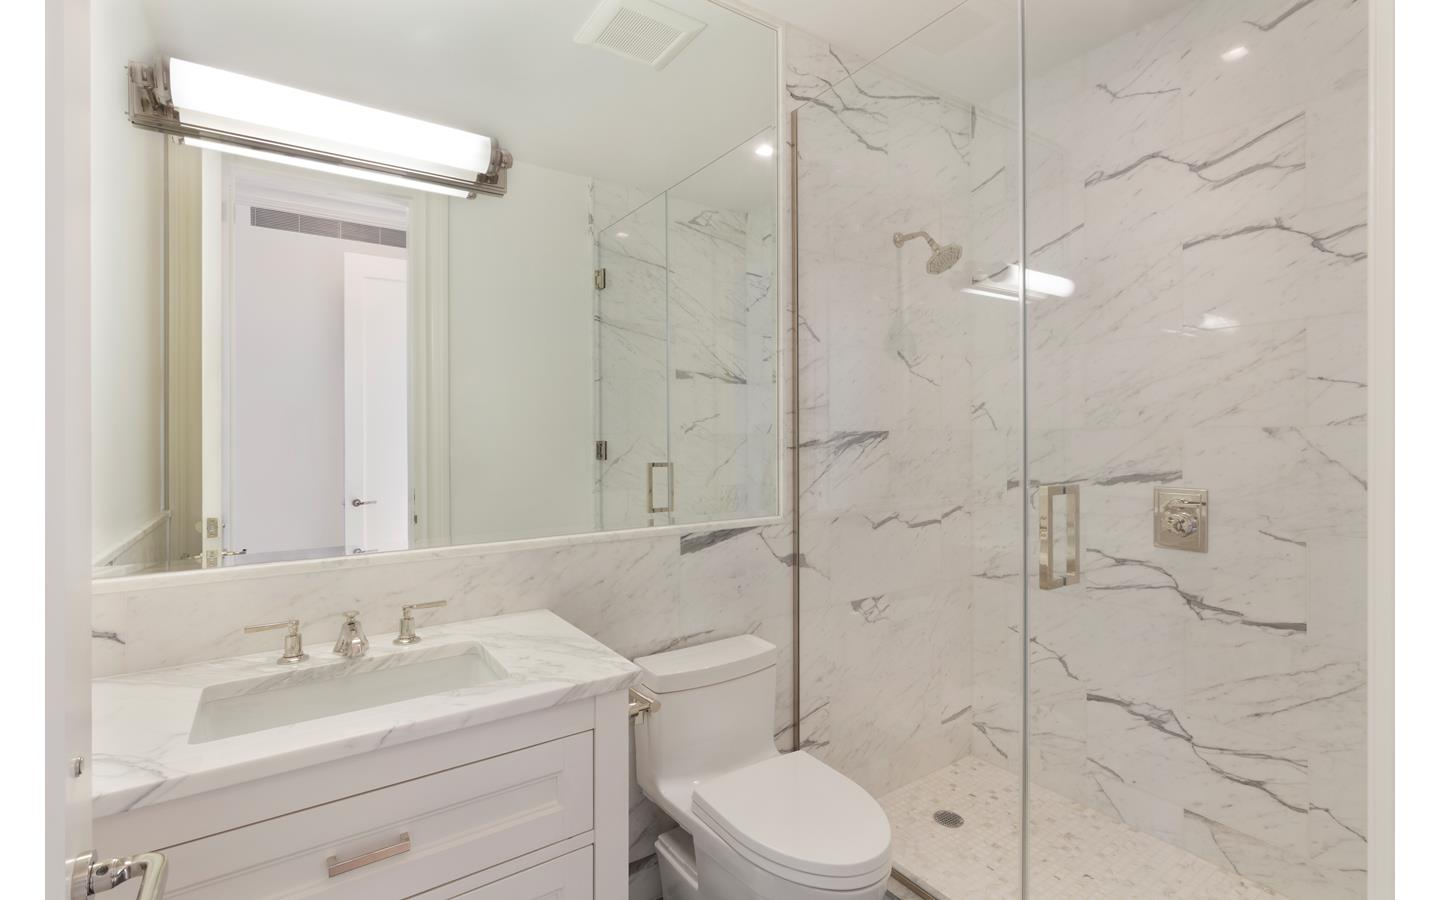 Bathroom Fixtures Upper East Side Nyc 46 east 82nd st - upper east side, new york | douglas elliman